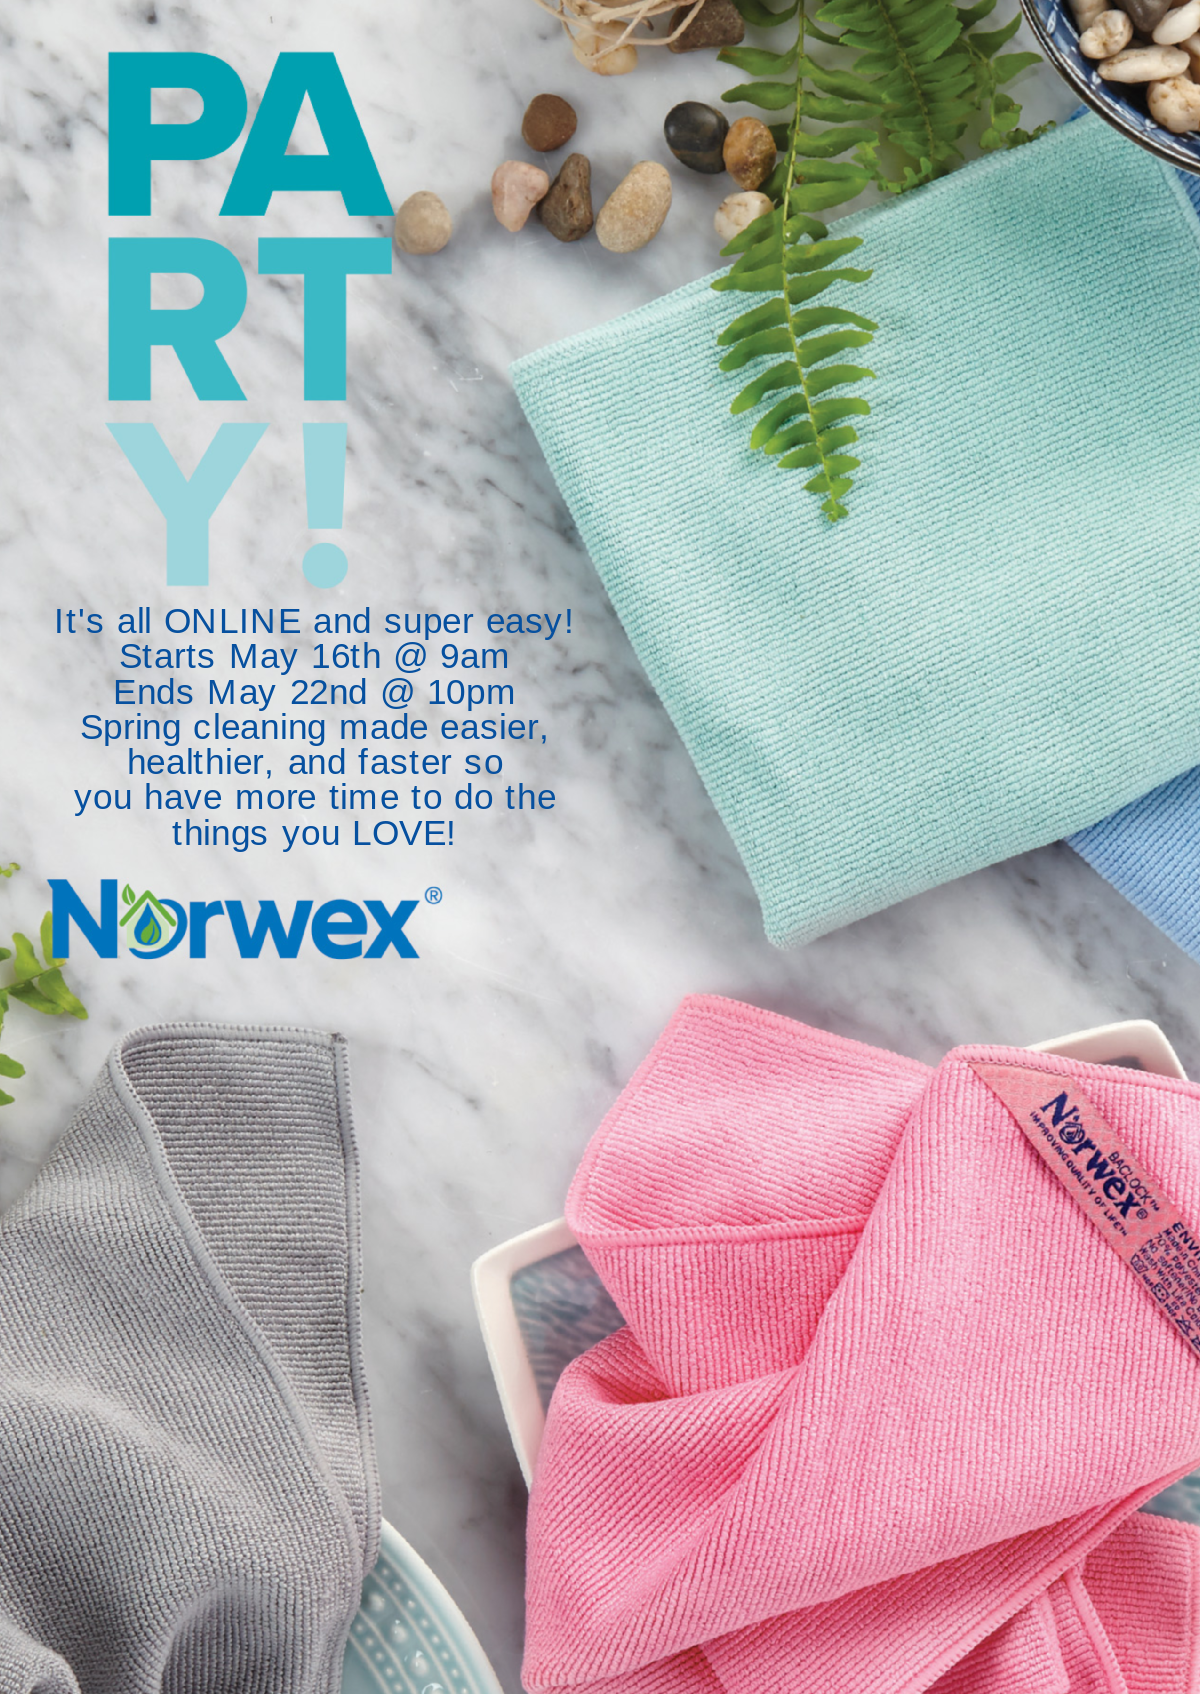 How To Join A Norwex Mystery Hostess Party - Seeing Dandy